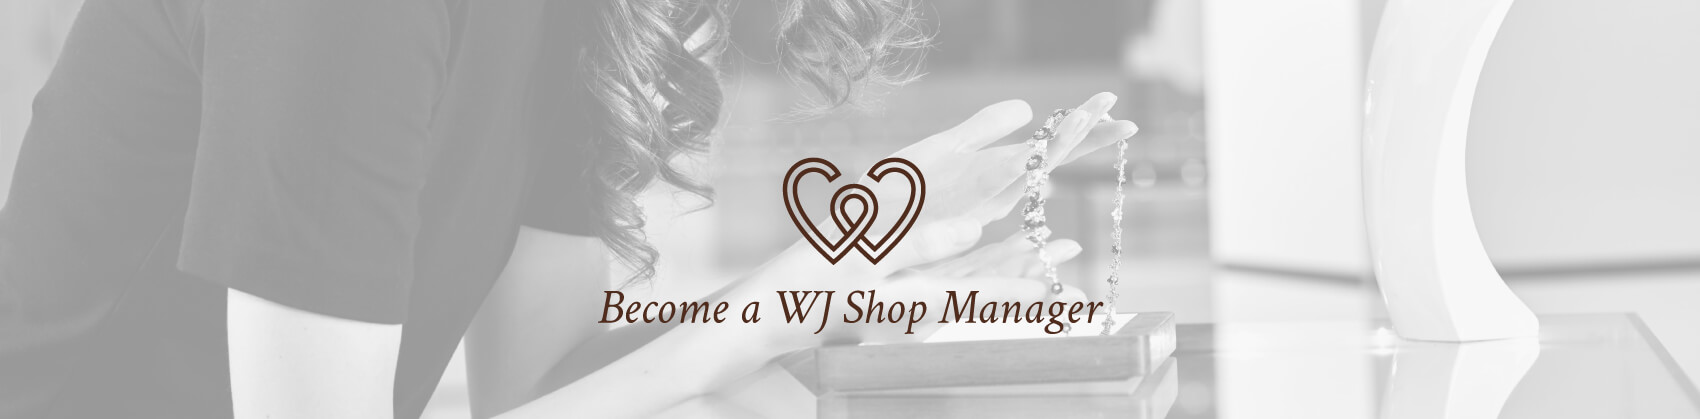 Become a WJ Manager